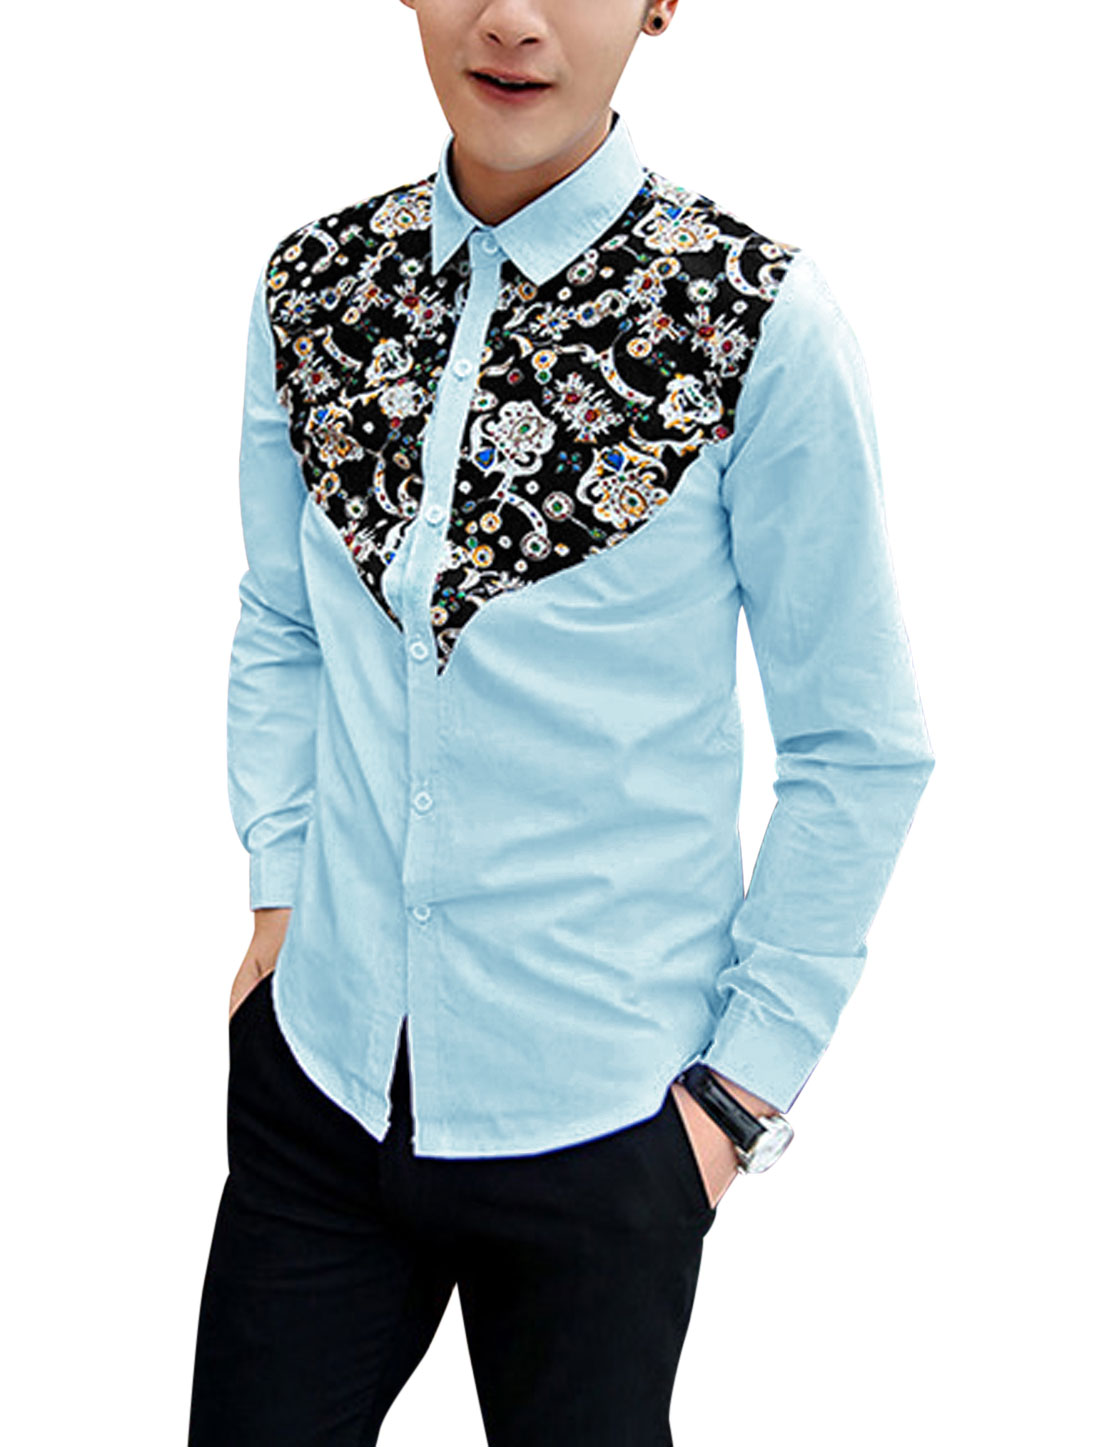 Men Button Closure Front Floral Prints Casual Shirt Light Blue M